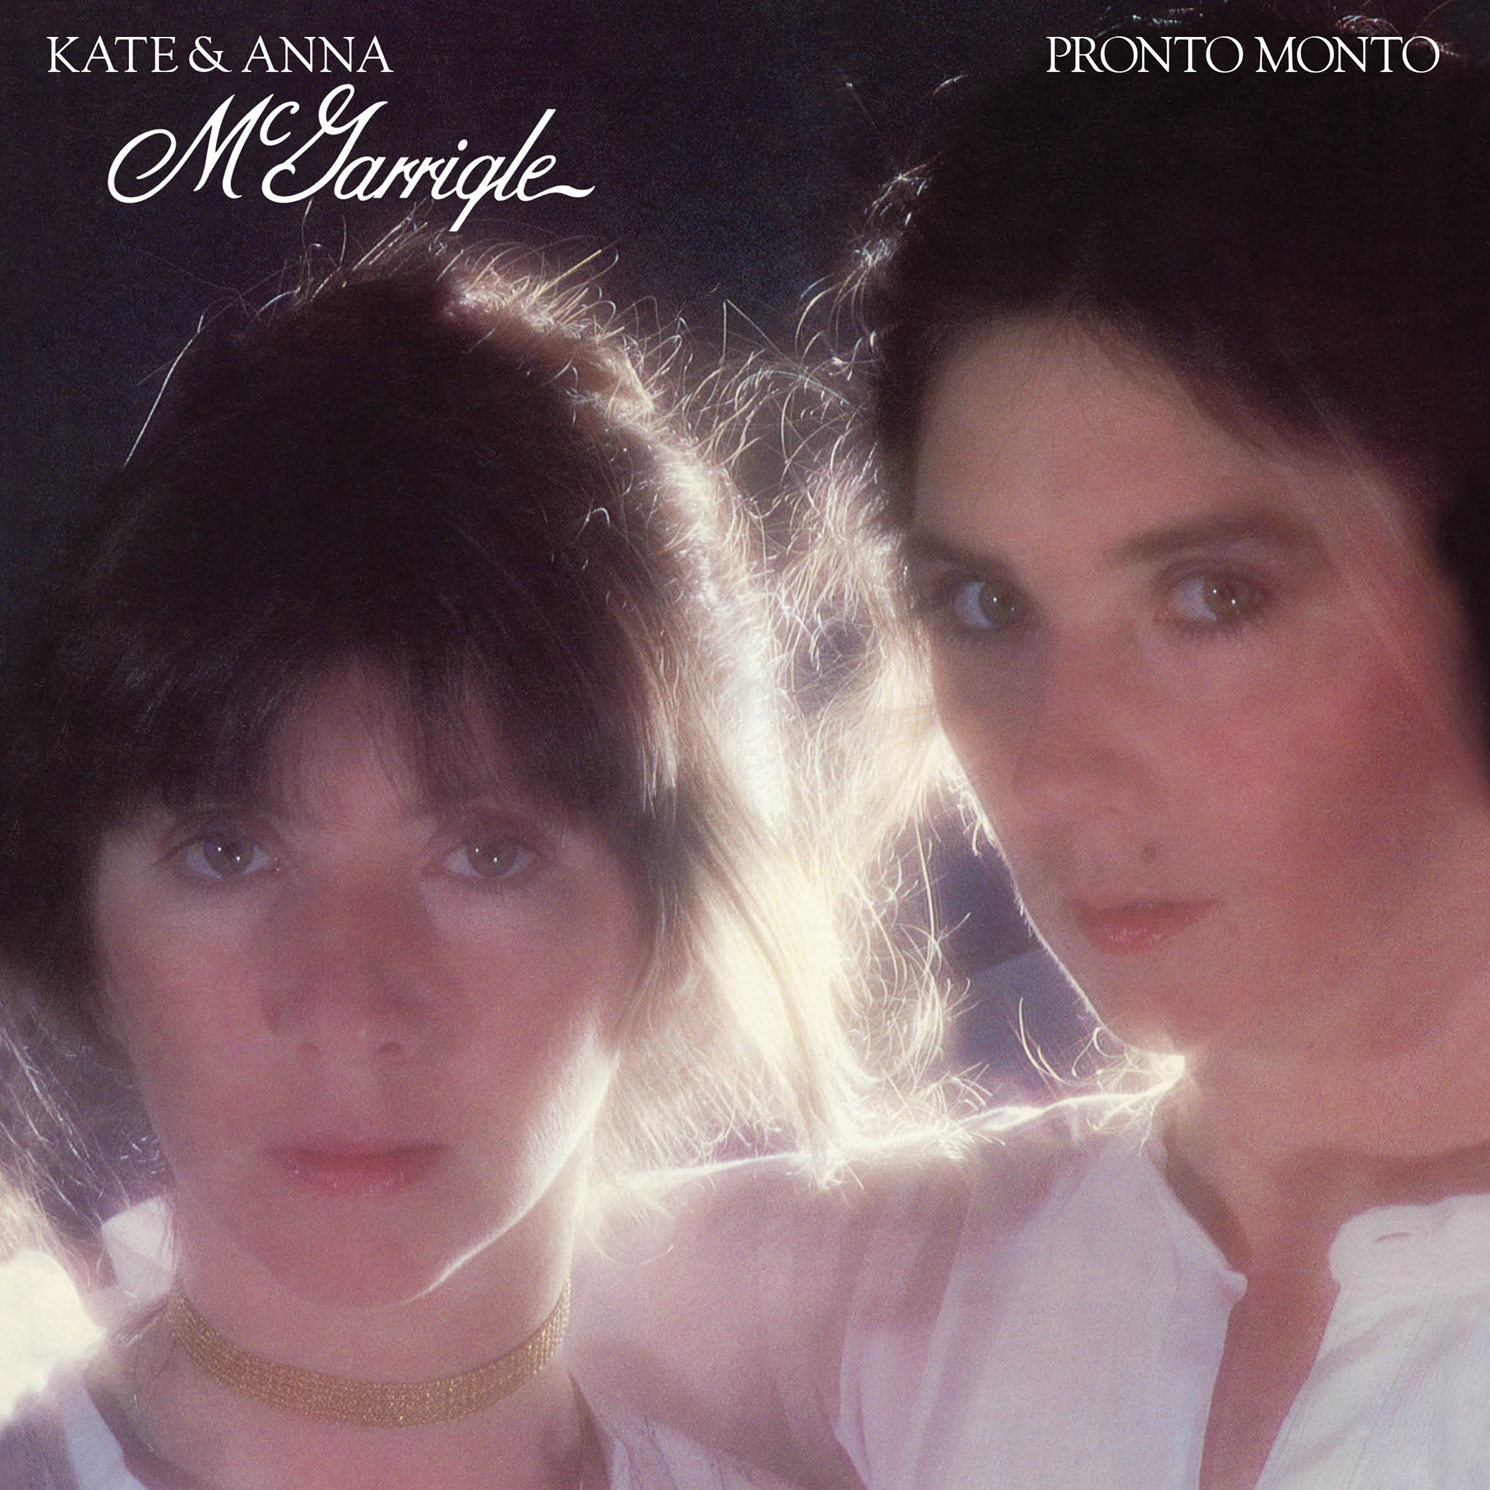 Kate & Anna McGarrigle-Pronto Monto  Release Date: July 1, 2016 Label: Omnivore Recordings  SERVICE: Mastering NUMBER OF DISCS: 1 GENRE: Rock FORMAT: CD